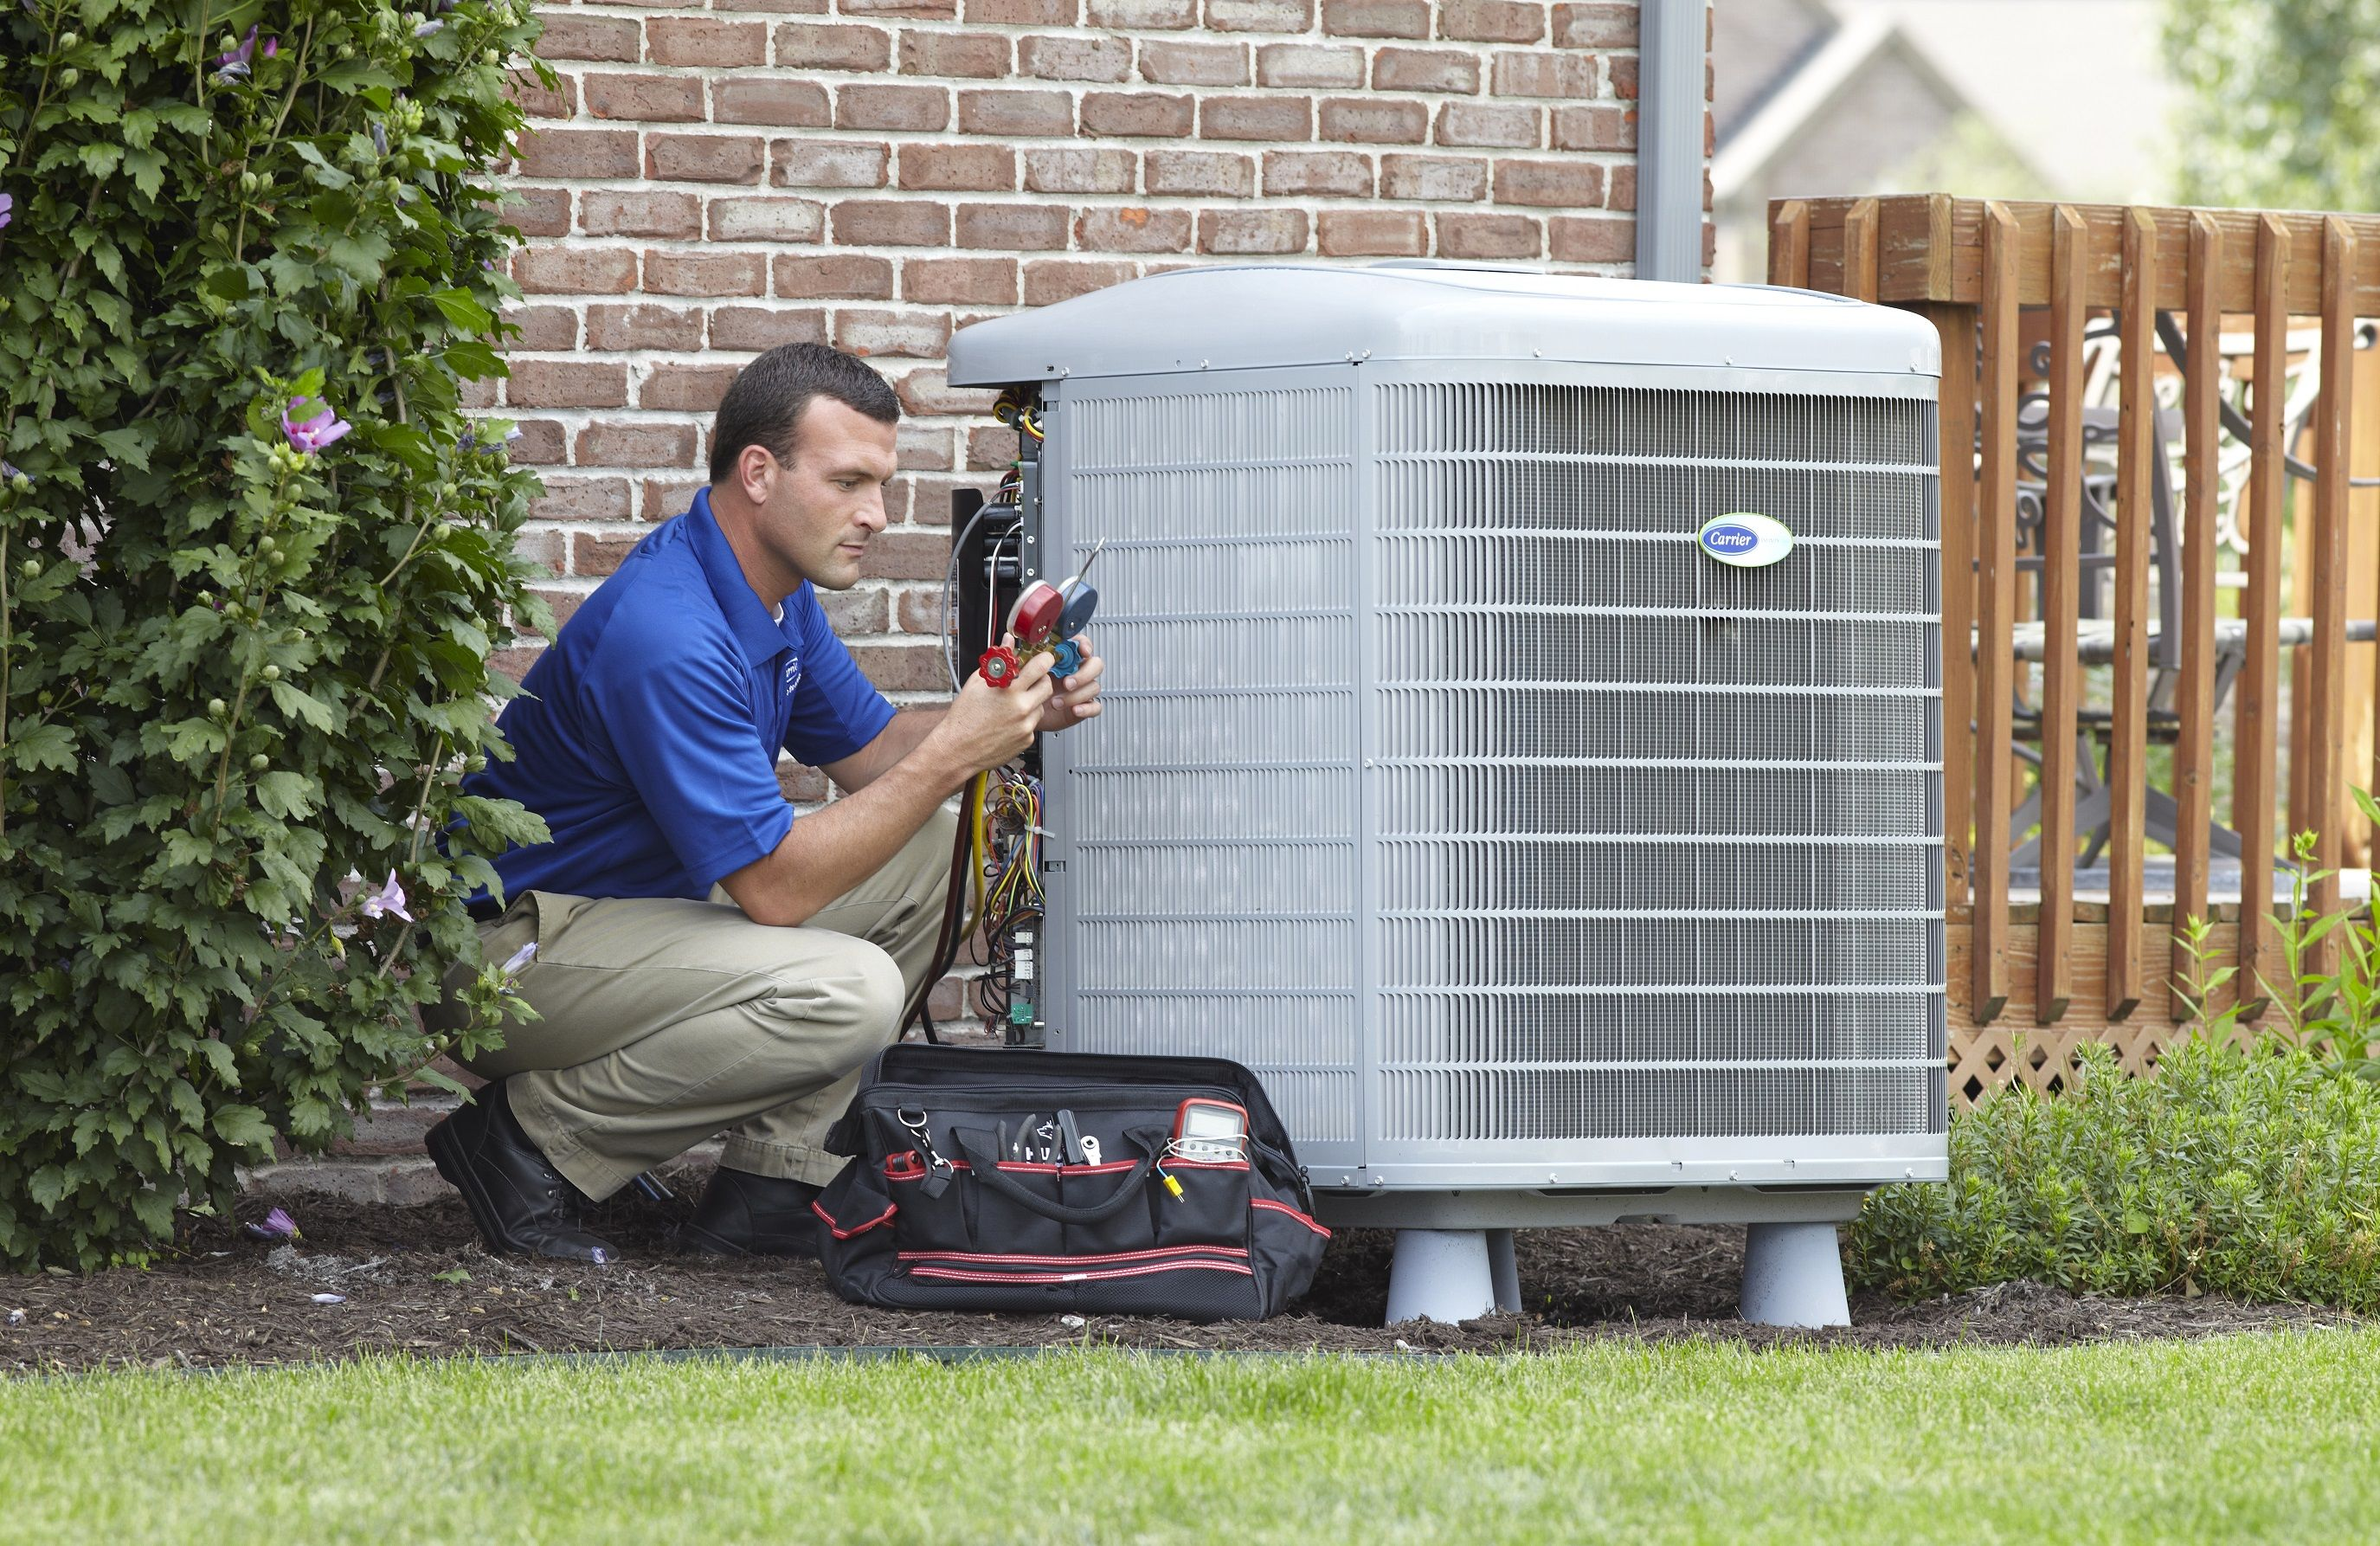 How Much Does Central Air Cost? Air conditioning